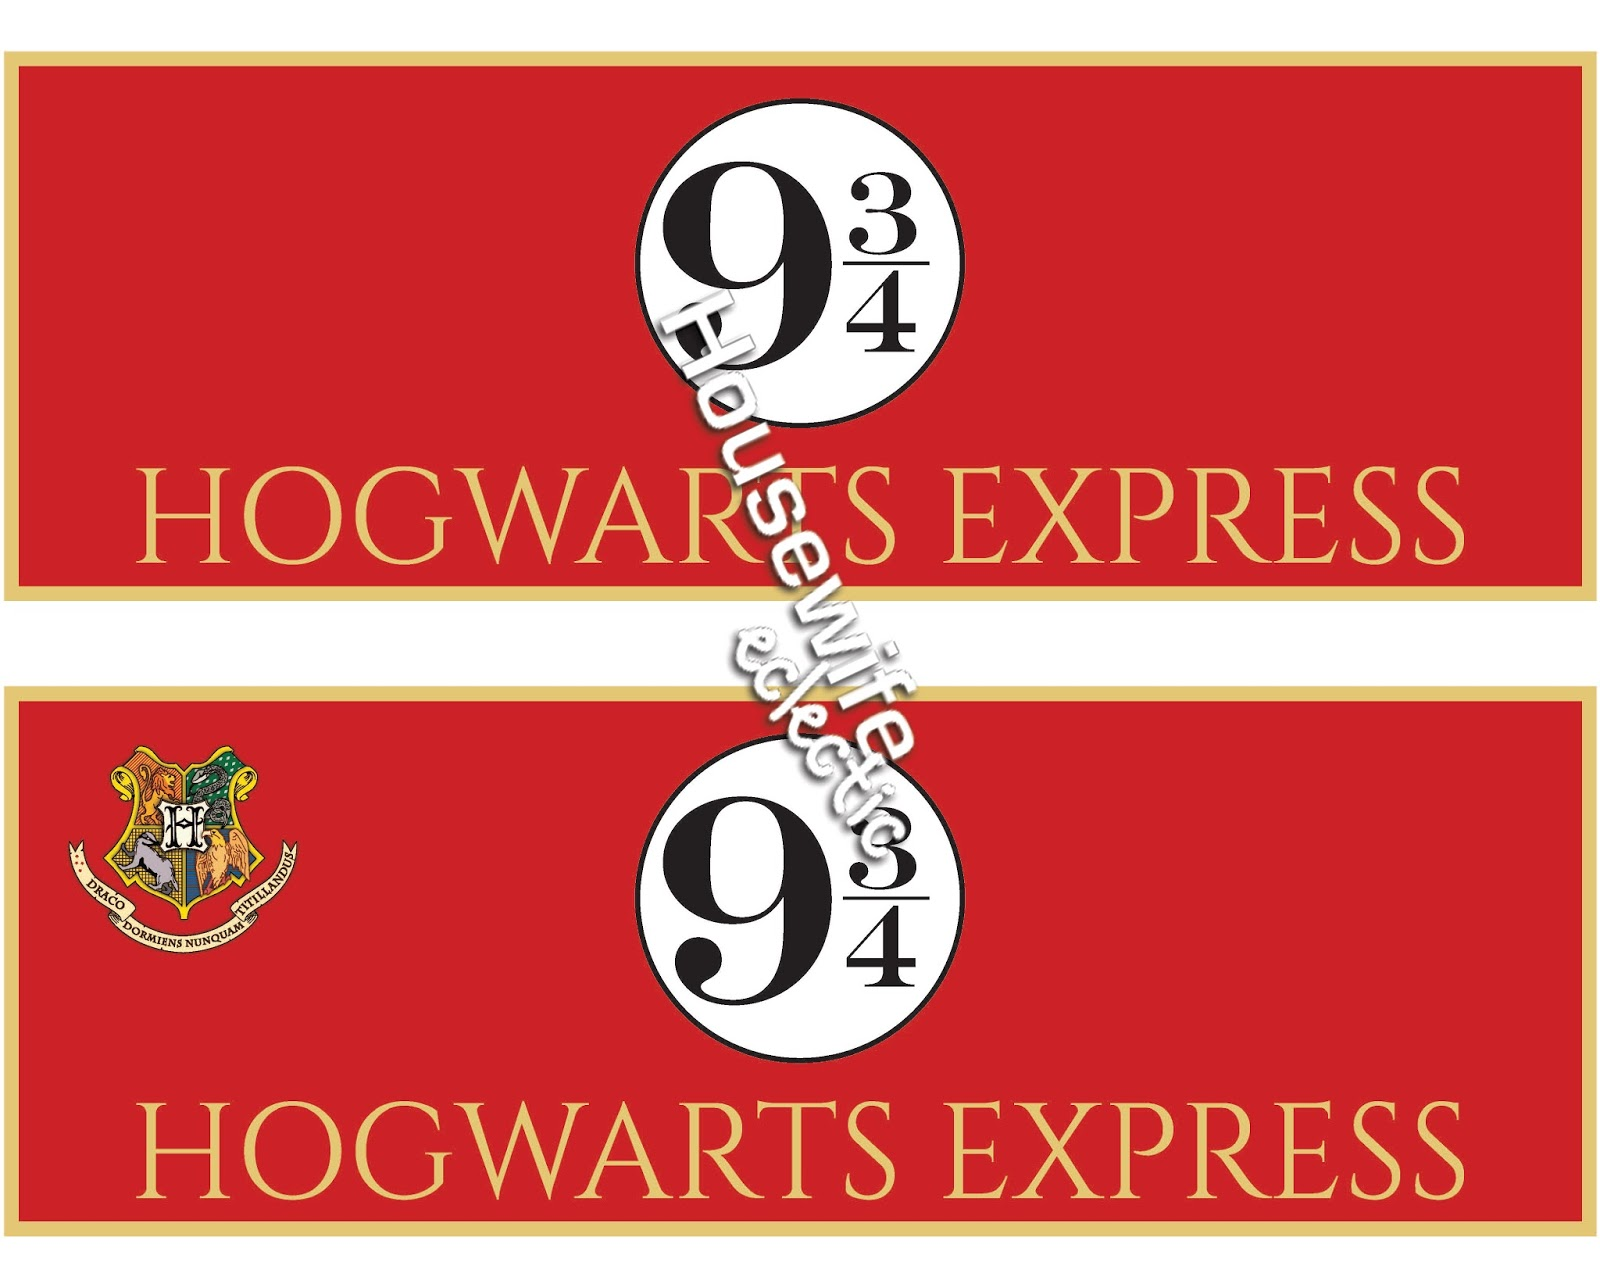 picture relating to Hogwarts Express Printable titled Harry Potter Trunk or Take care of with Absolutely free Printable System 9 3